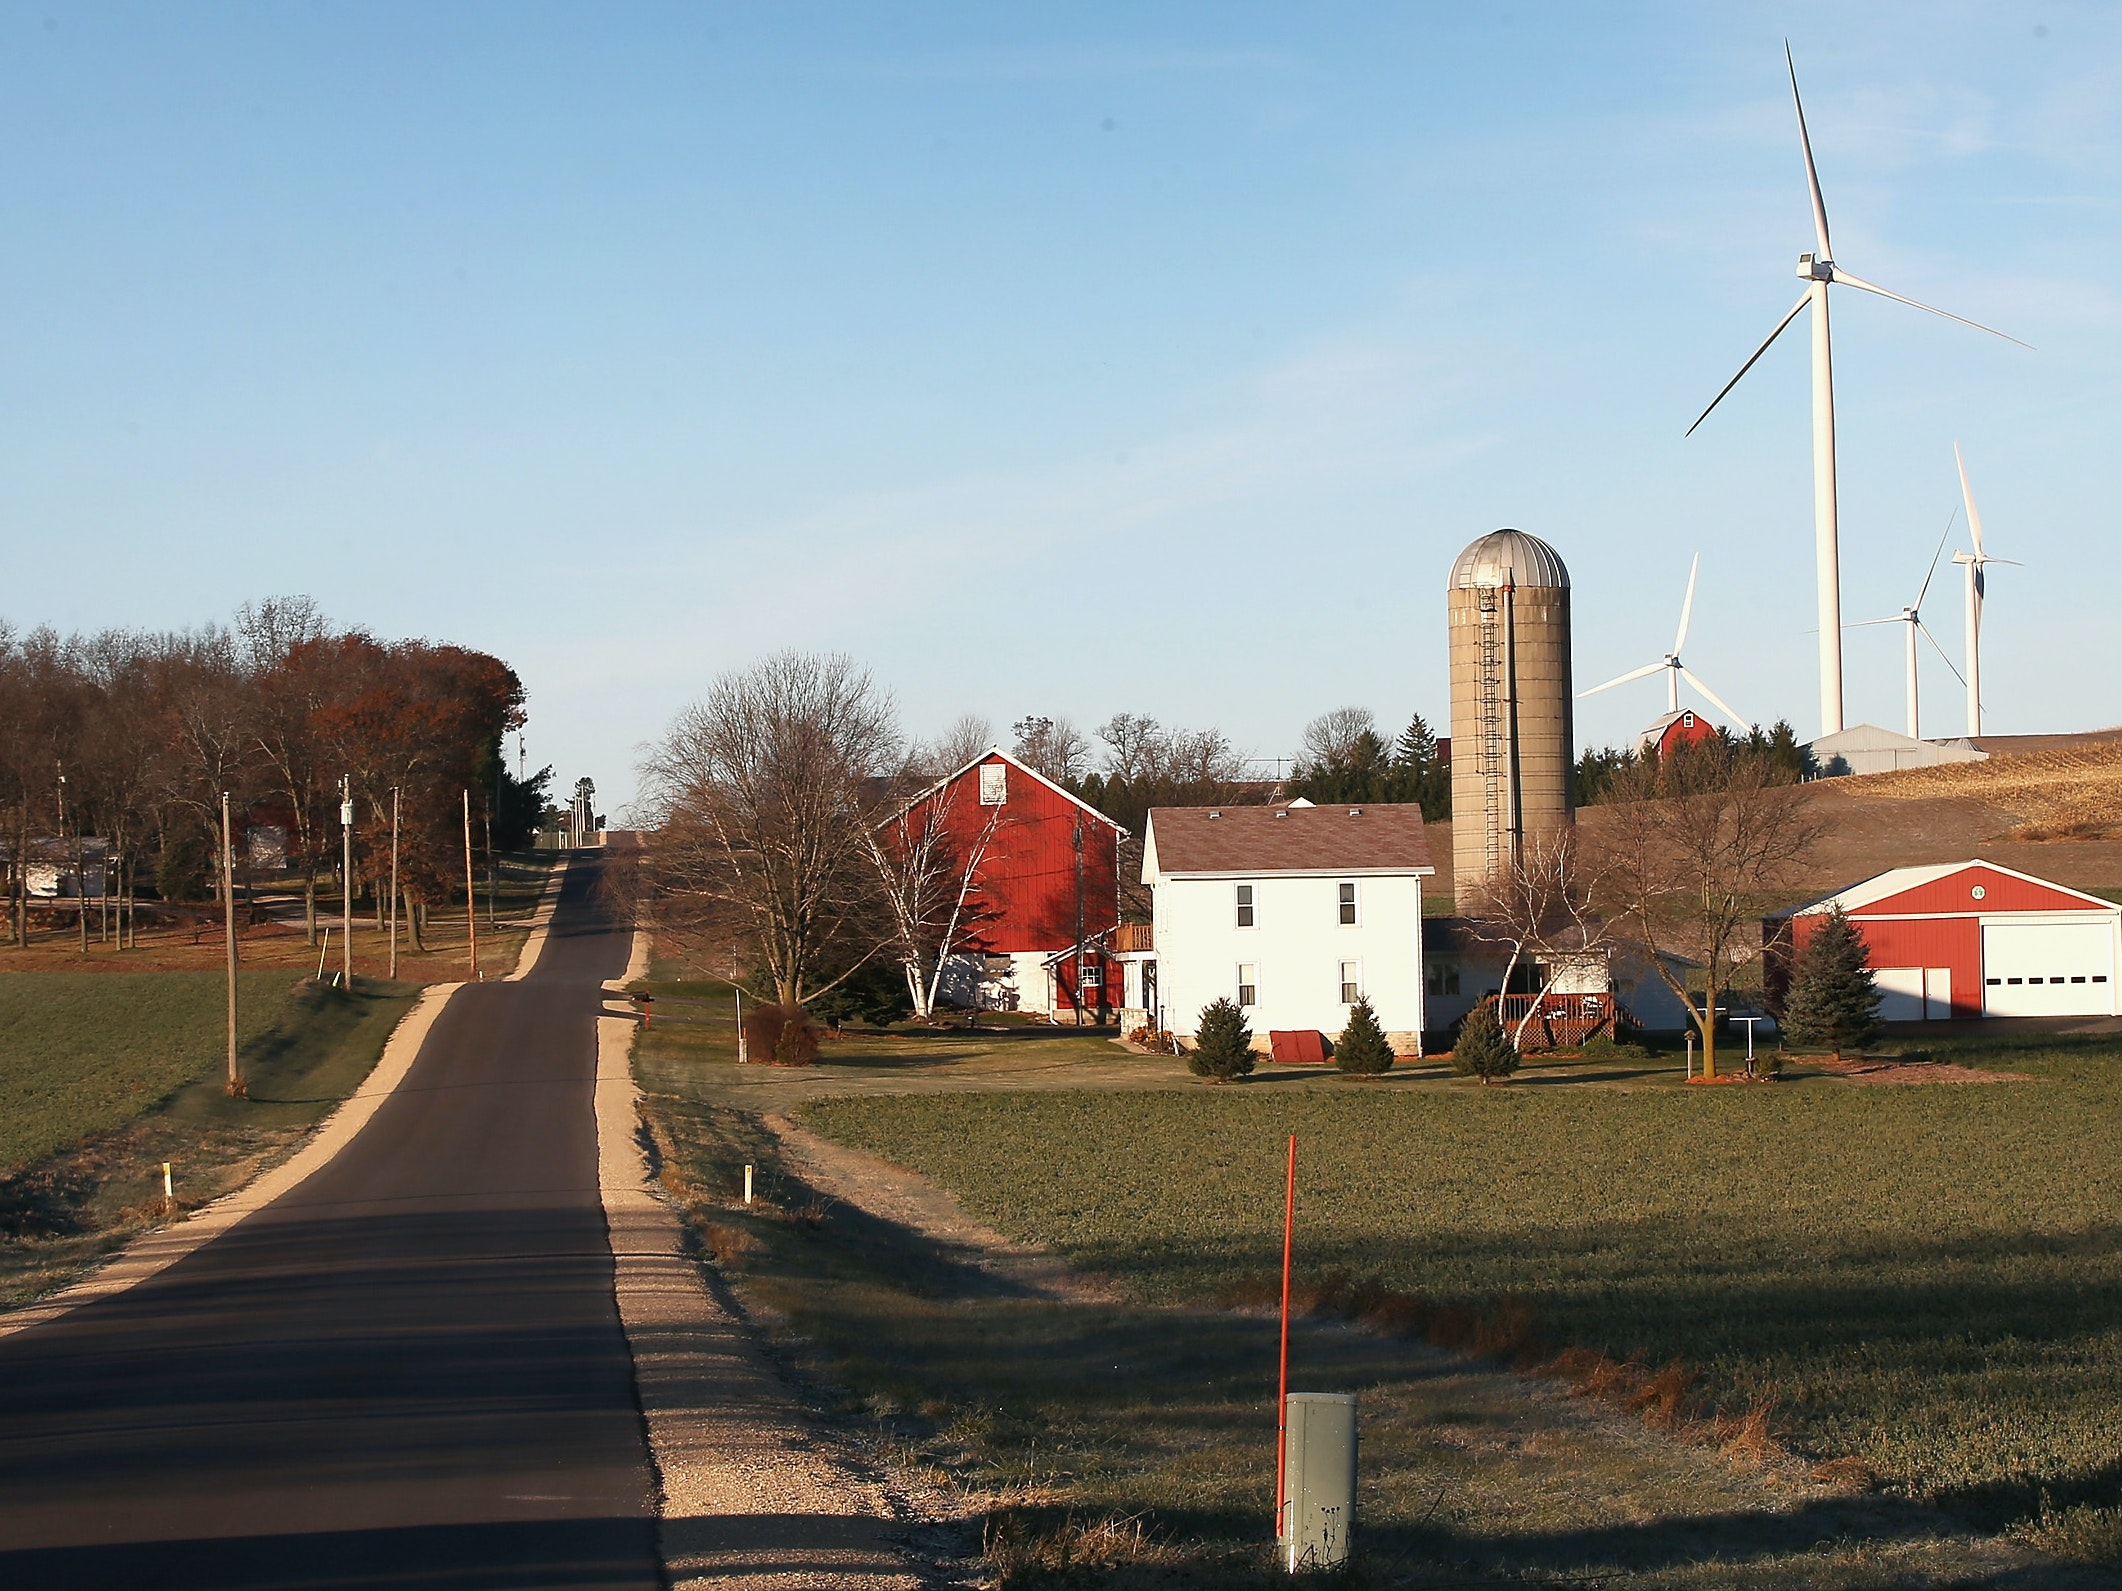 Wind turbines rise up above farmland on the outskirts of the Wisconsin state capital.